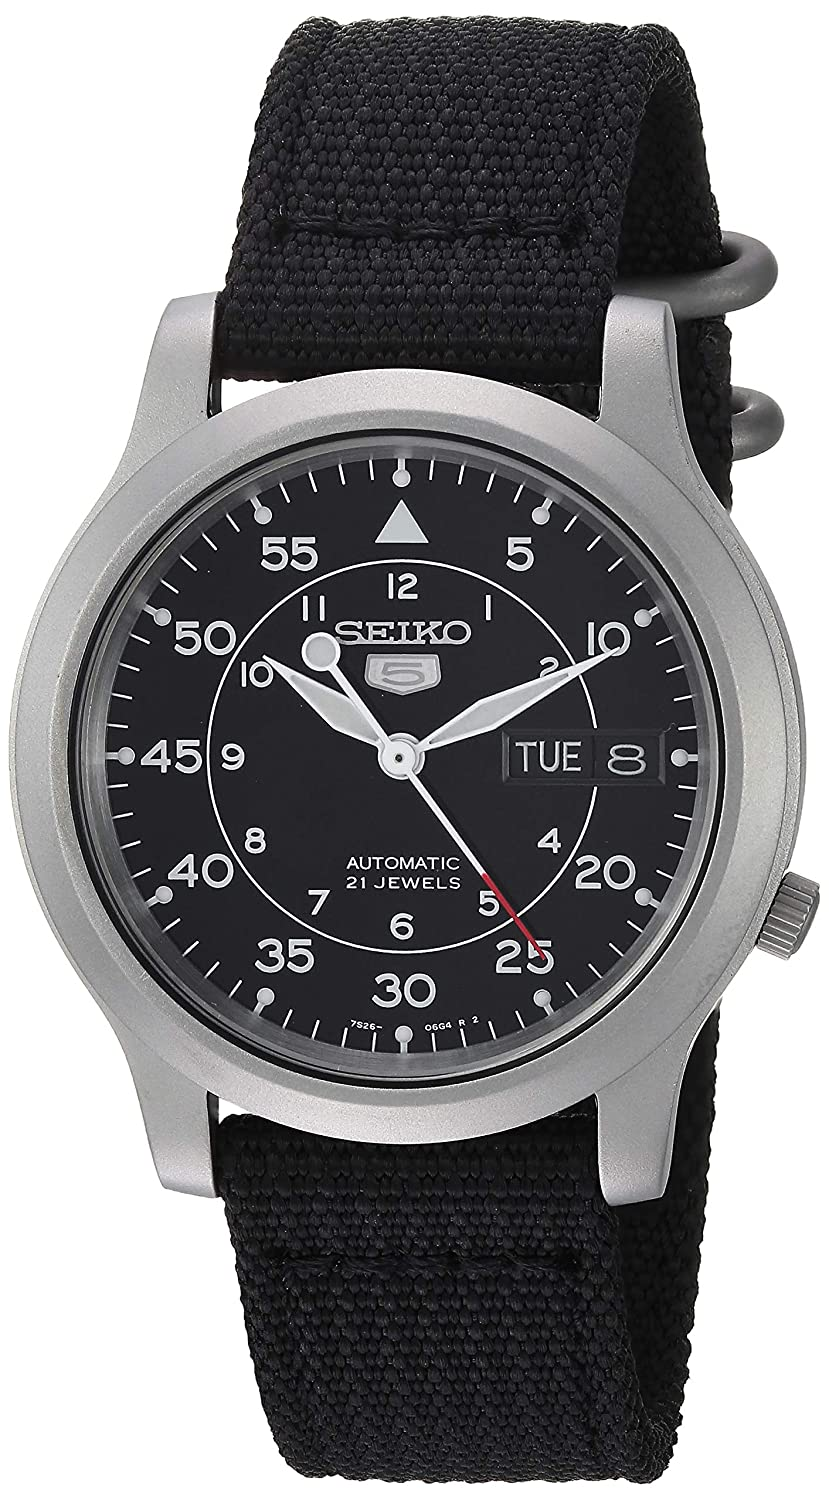 bb2a472c049 Seiko 5 Men s Automatic Watch with Black Dial Analogue Display and Black  Fabric Strap SNK809K2  Seiko  Amazon.co.uk  Watches